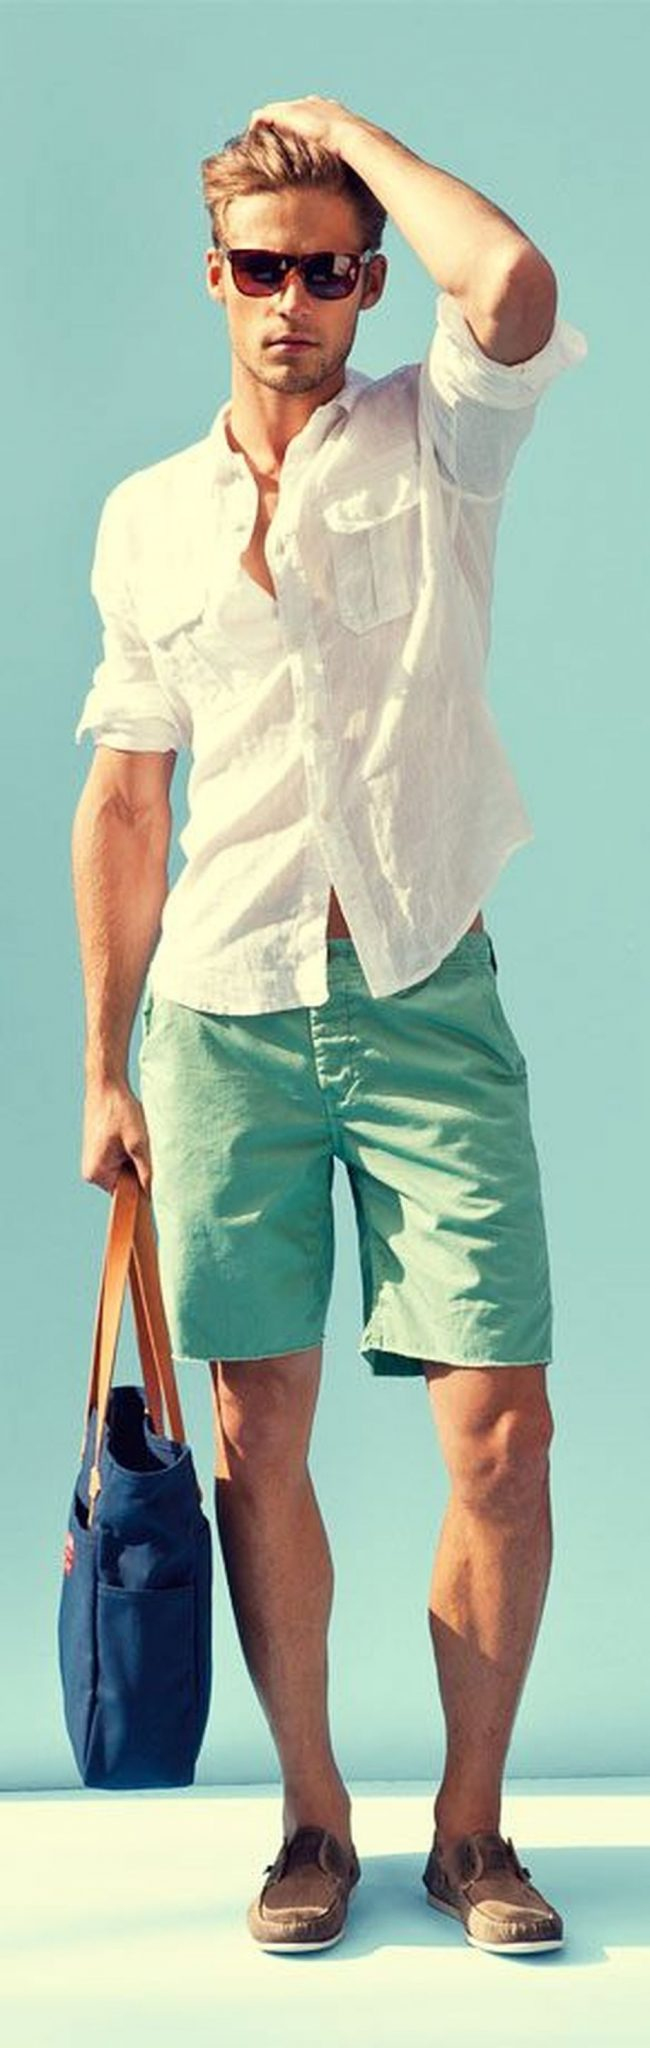 Cool Casual Men's Fashions Summer Outfits Ideas 22